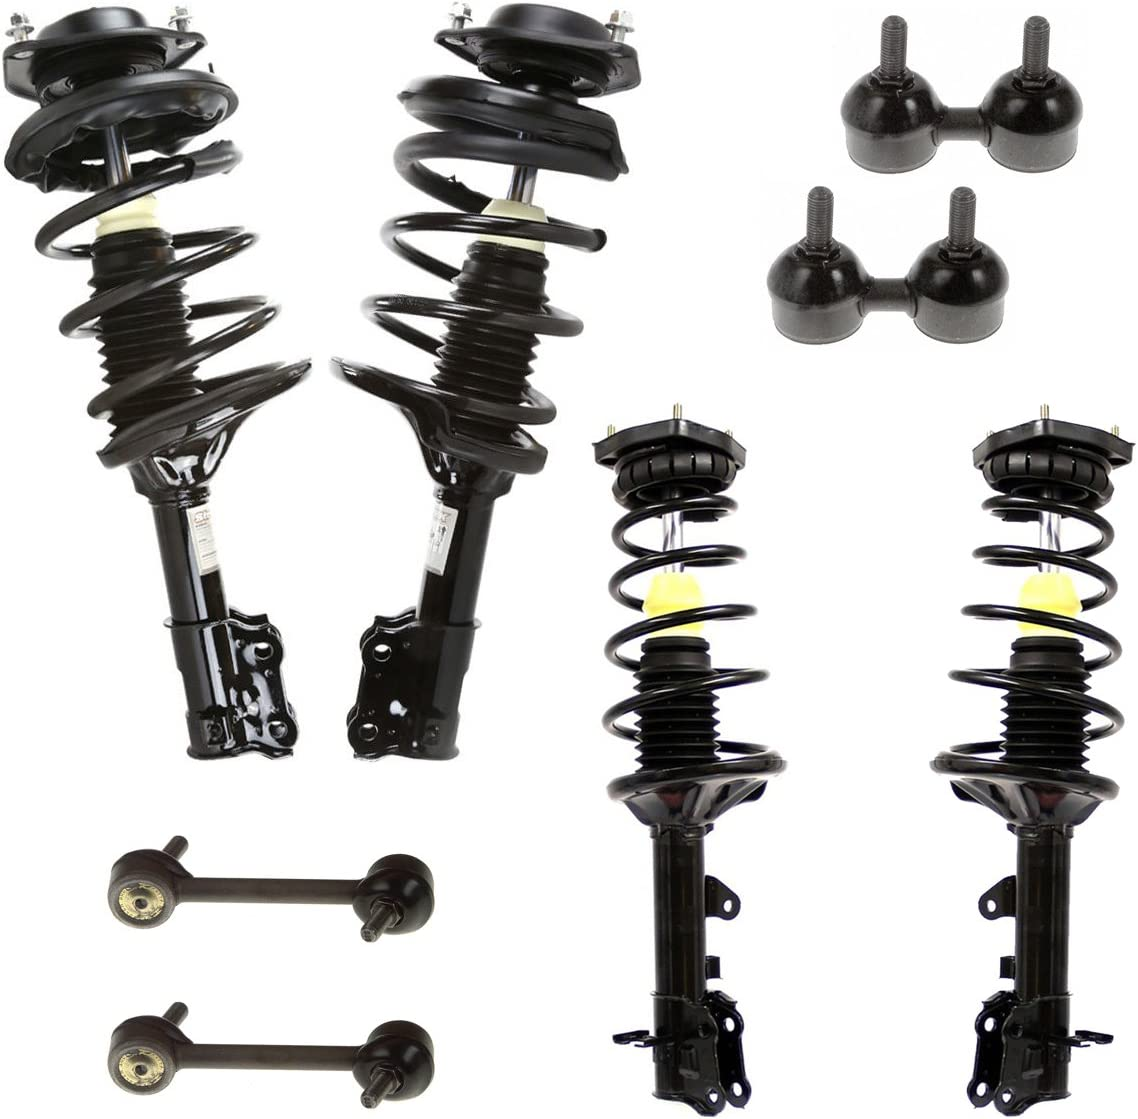 Detroit Axle 8PC Front and Rear Struts and Sway Bar Links for 2000-2006 Hyundai Elantra Produced After 6//2000